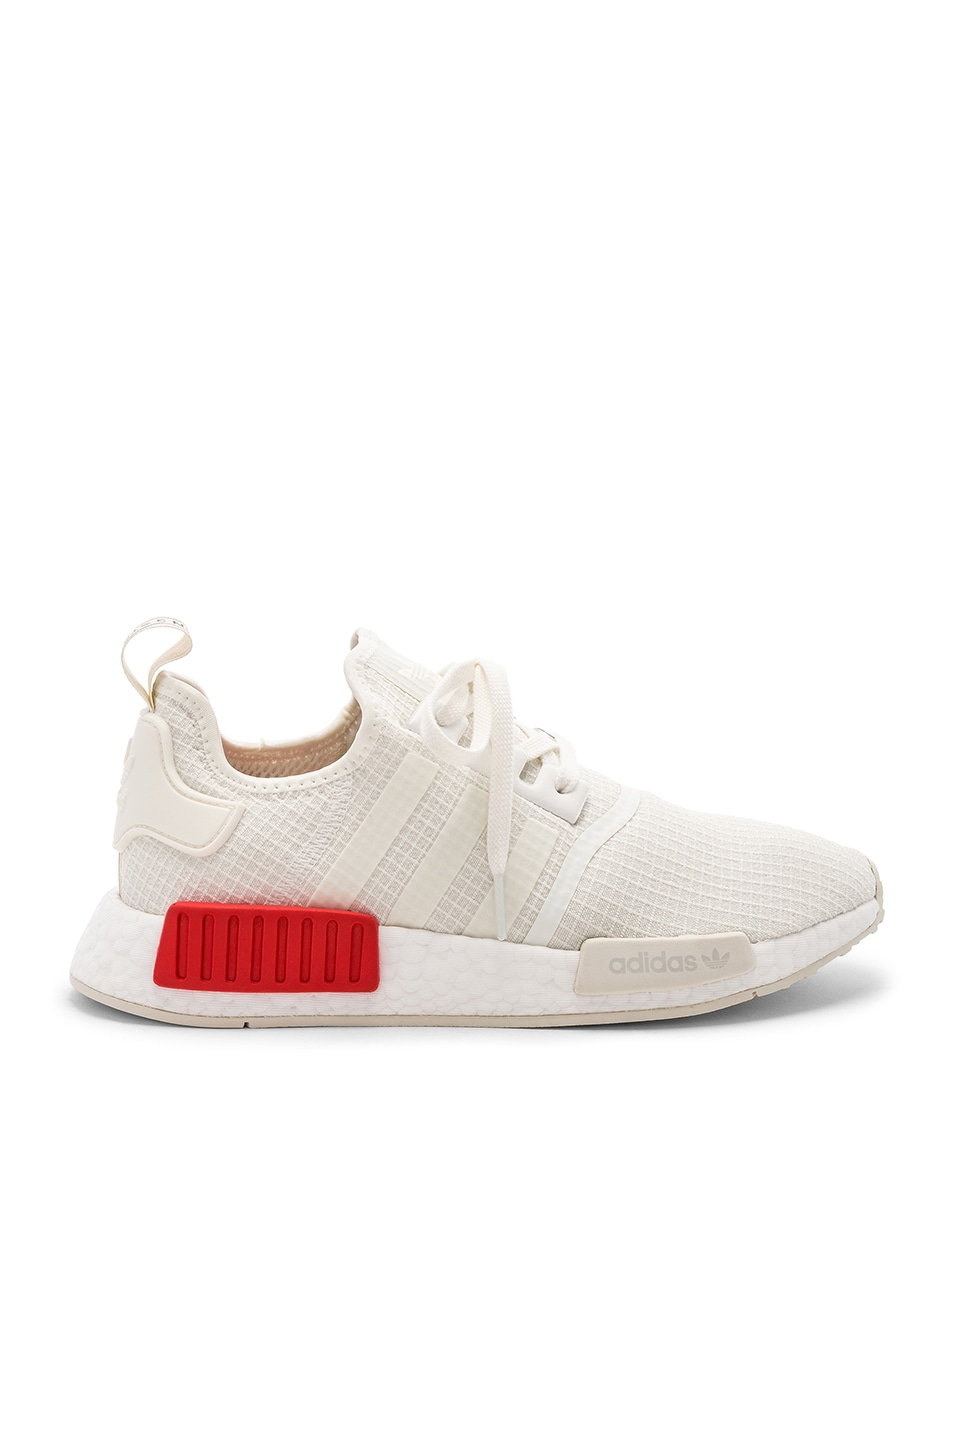 Image 1 of adidas Originals NMD R1 in Off White & Off White & Lush Red